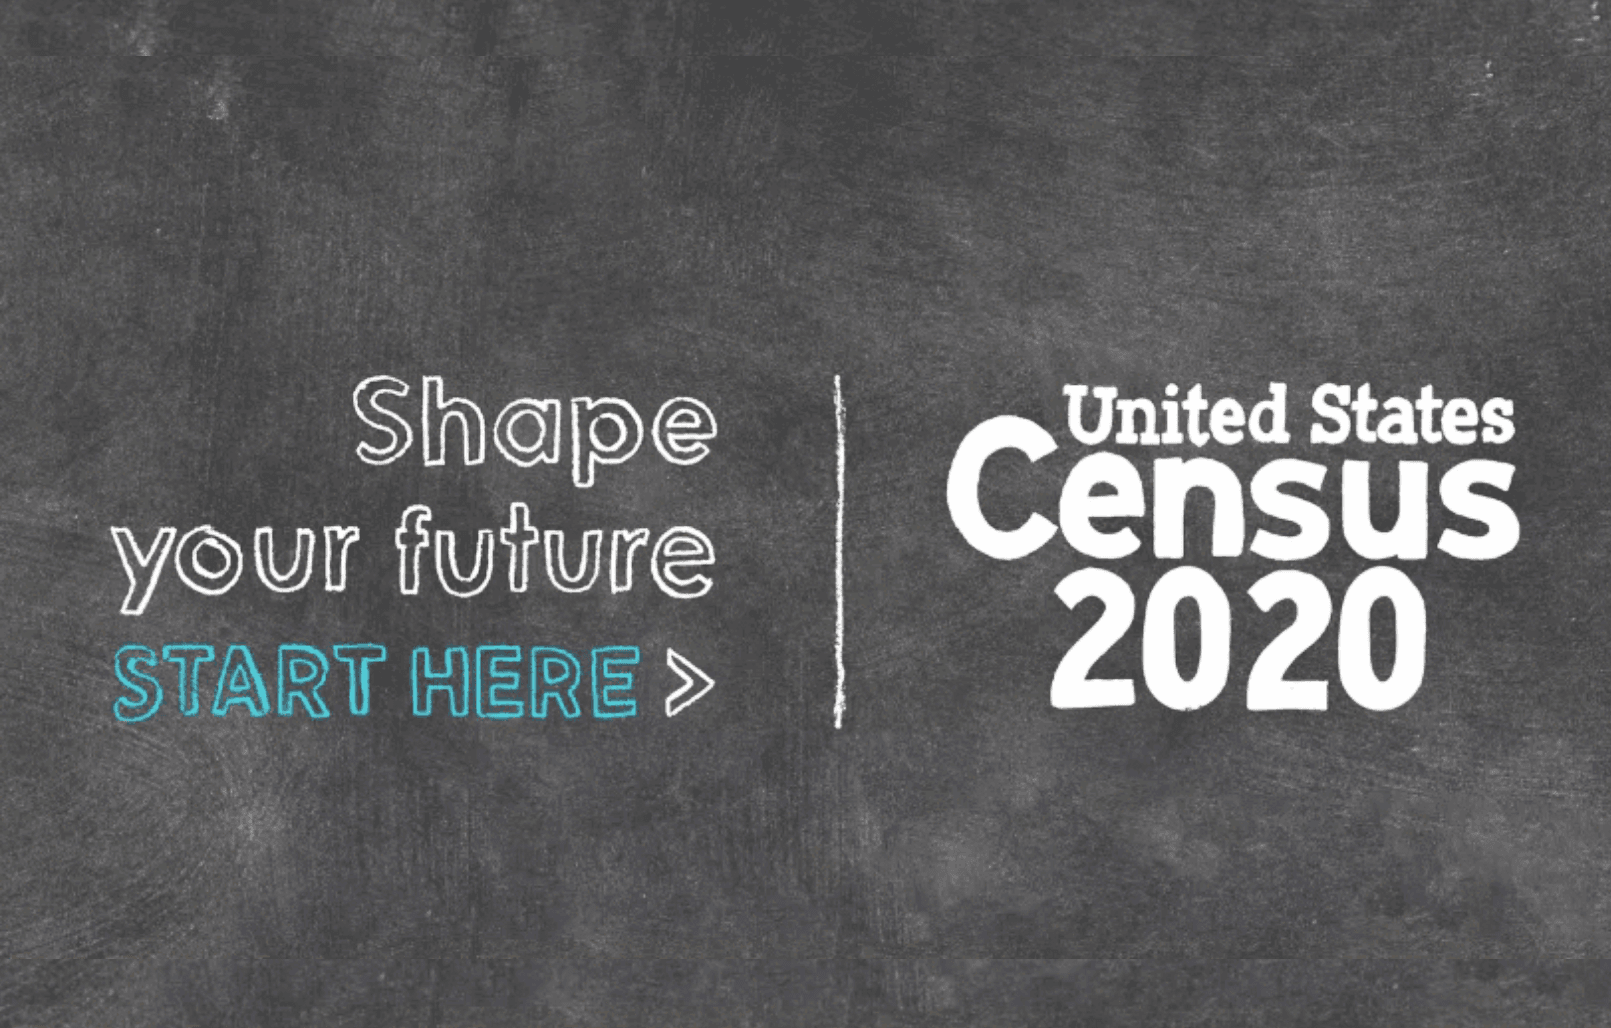 Chalkboard image with 2020 Census written on it